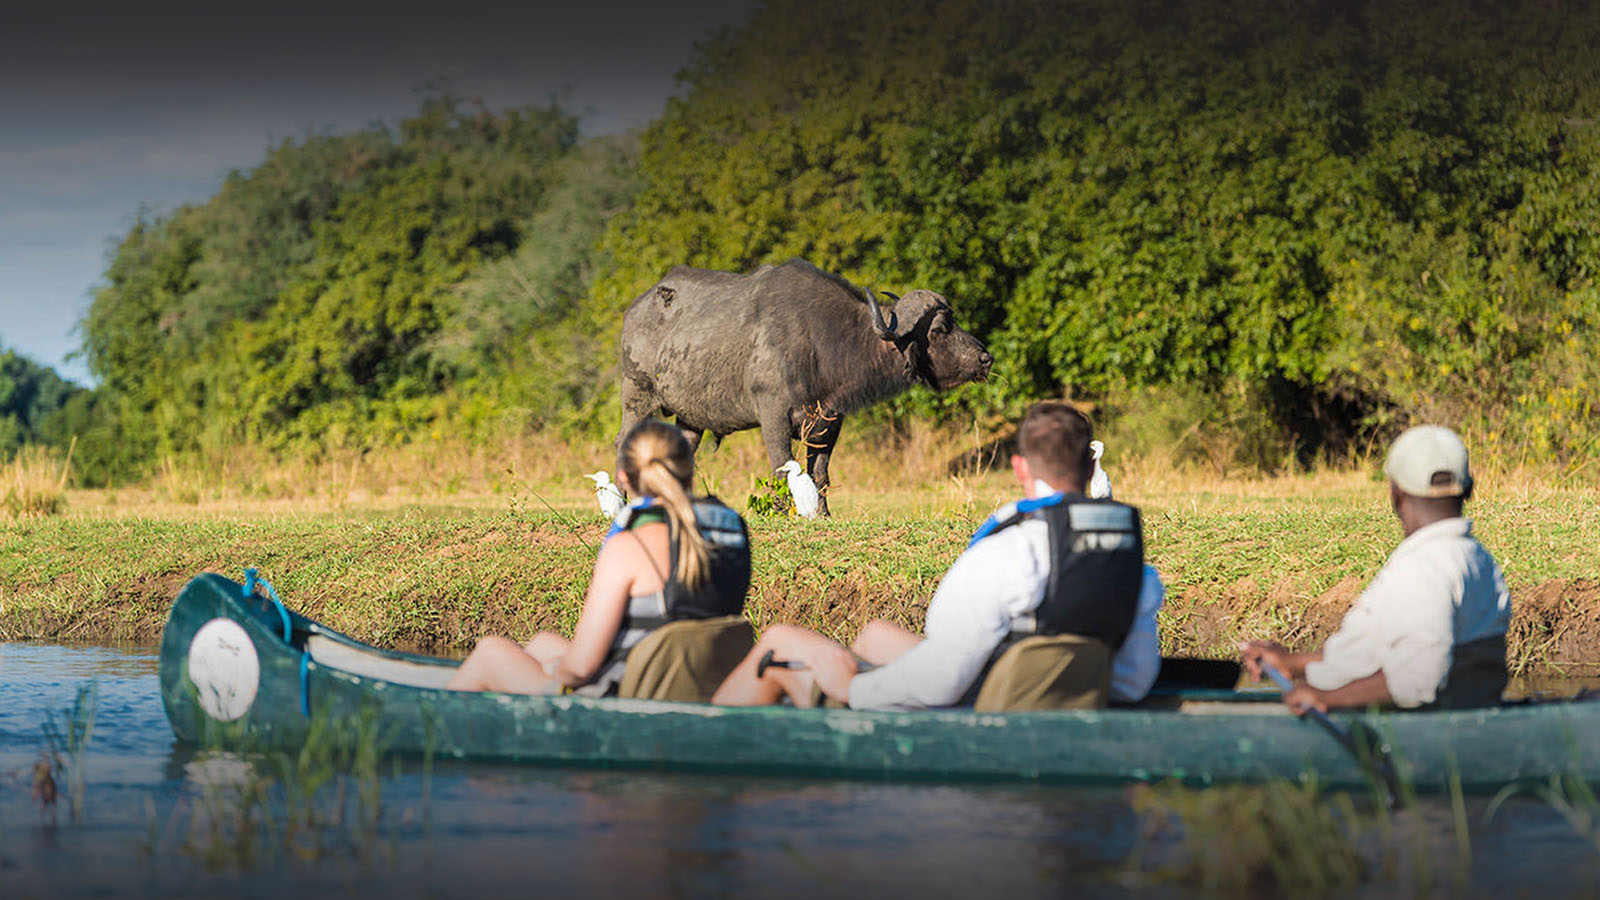 the royal zambezi zambia-in-style-safari-packages-lodges-lower-zambezi-canoeing-buffalo-river